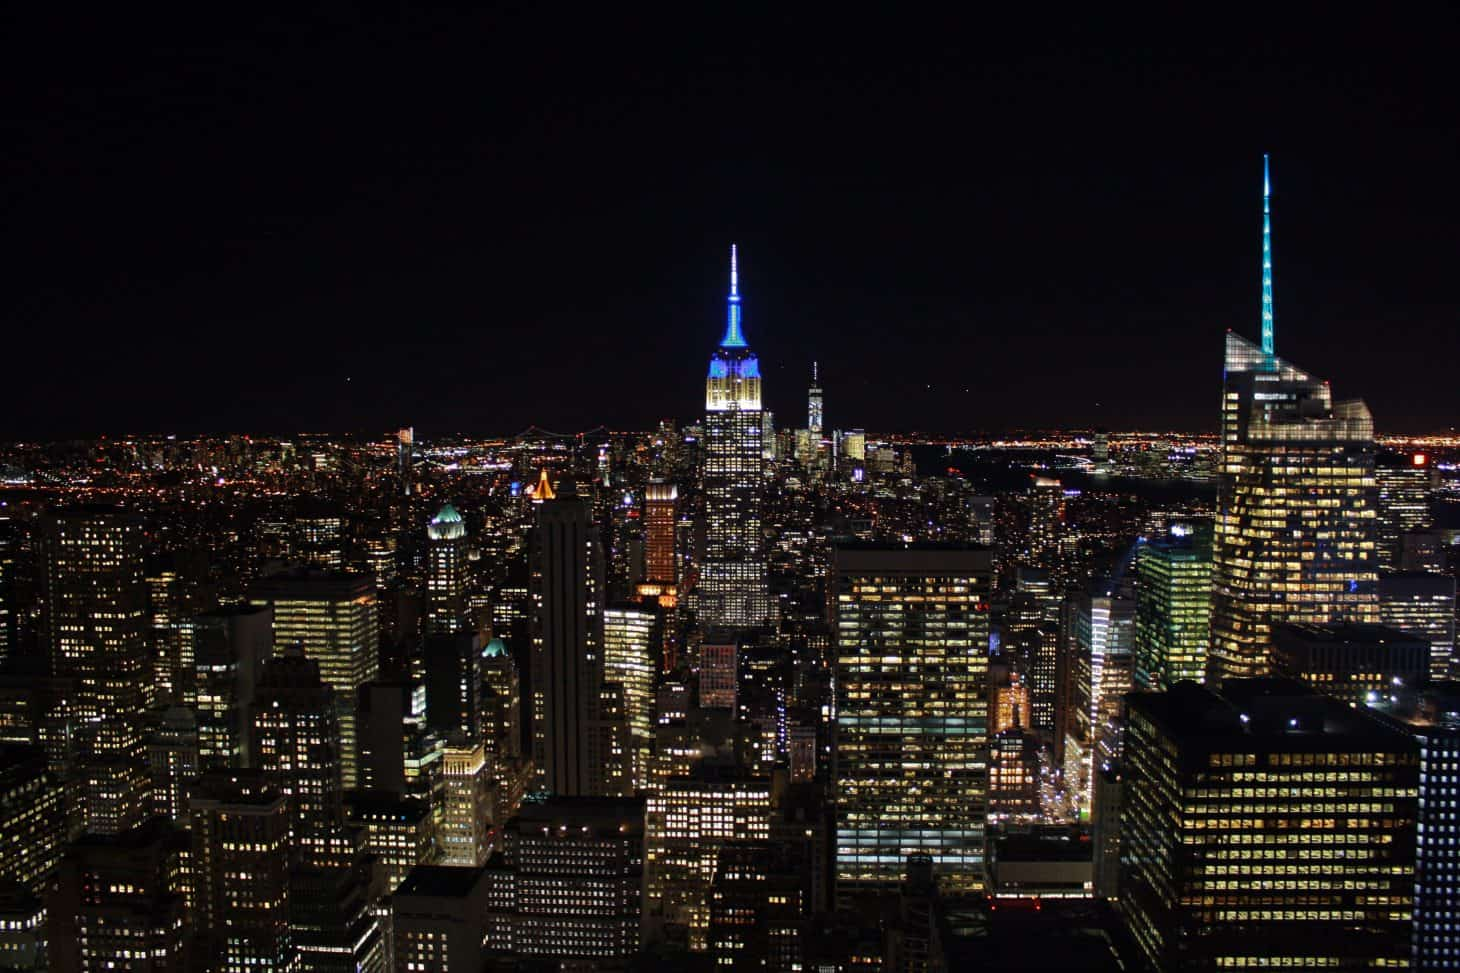 New York skyline at night from the Rockefeller Centre